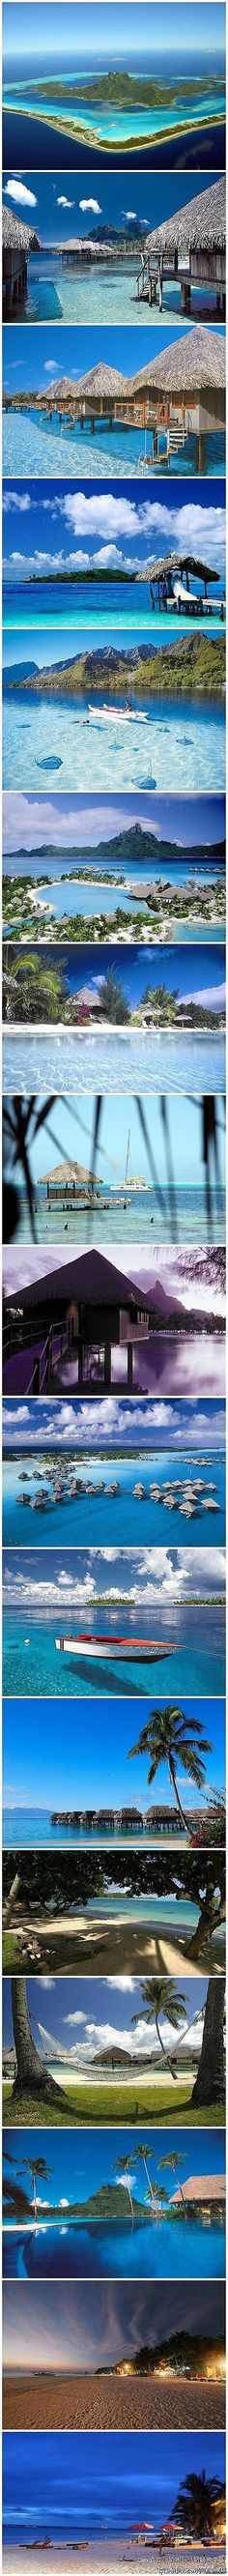 The Best Shots of Bora Bora Tahiti,it is easy to go there from USA.amazing place for your honeymoon,Only heaven could be as beautiful! Vacation Places, Dream Vacations, Places To Travel, Places To See, Travel Destinations, Holiday Destinations, Romantic Vacations, Italy Vacation, Romantic Travel